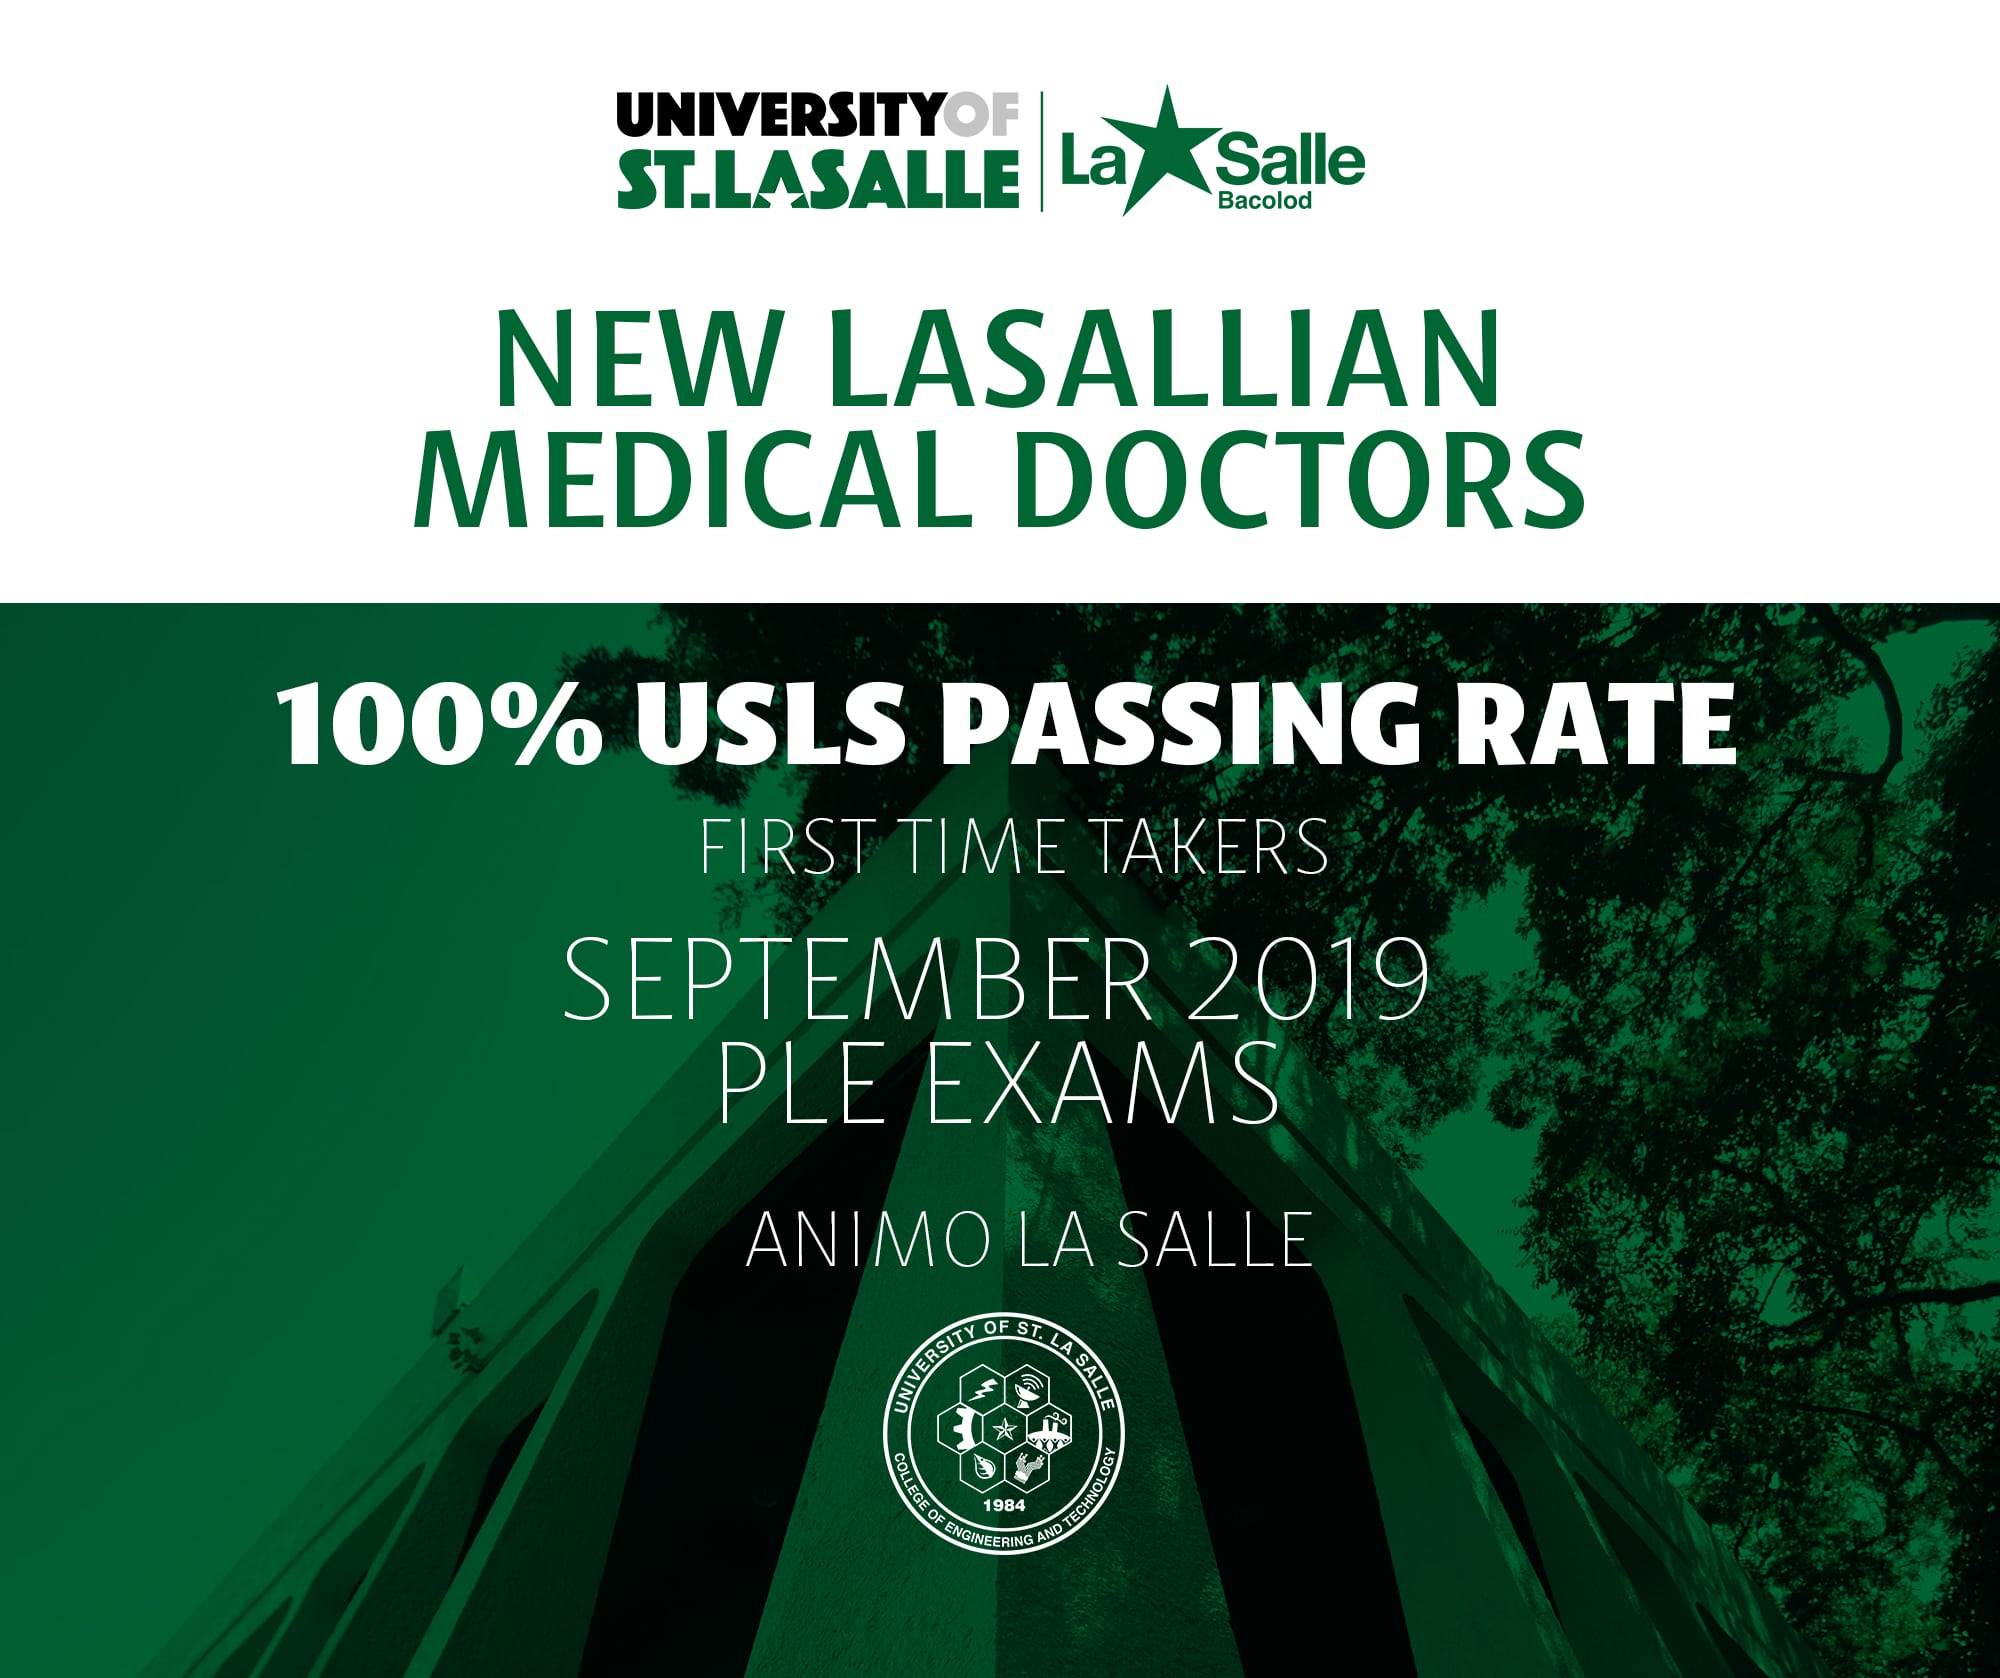 New-Lasallian-medical-doctors.jpg